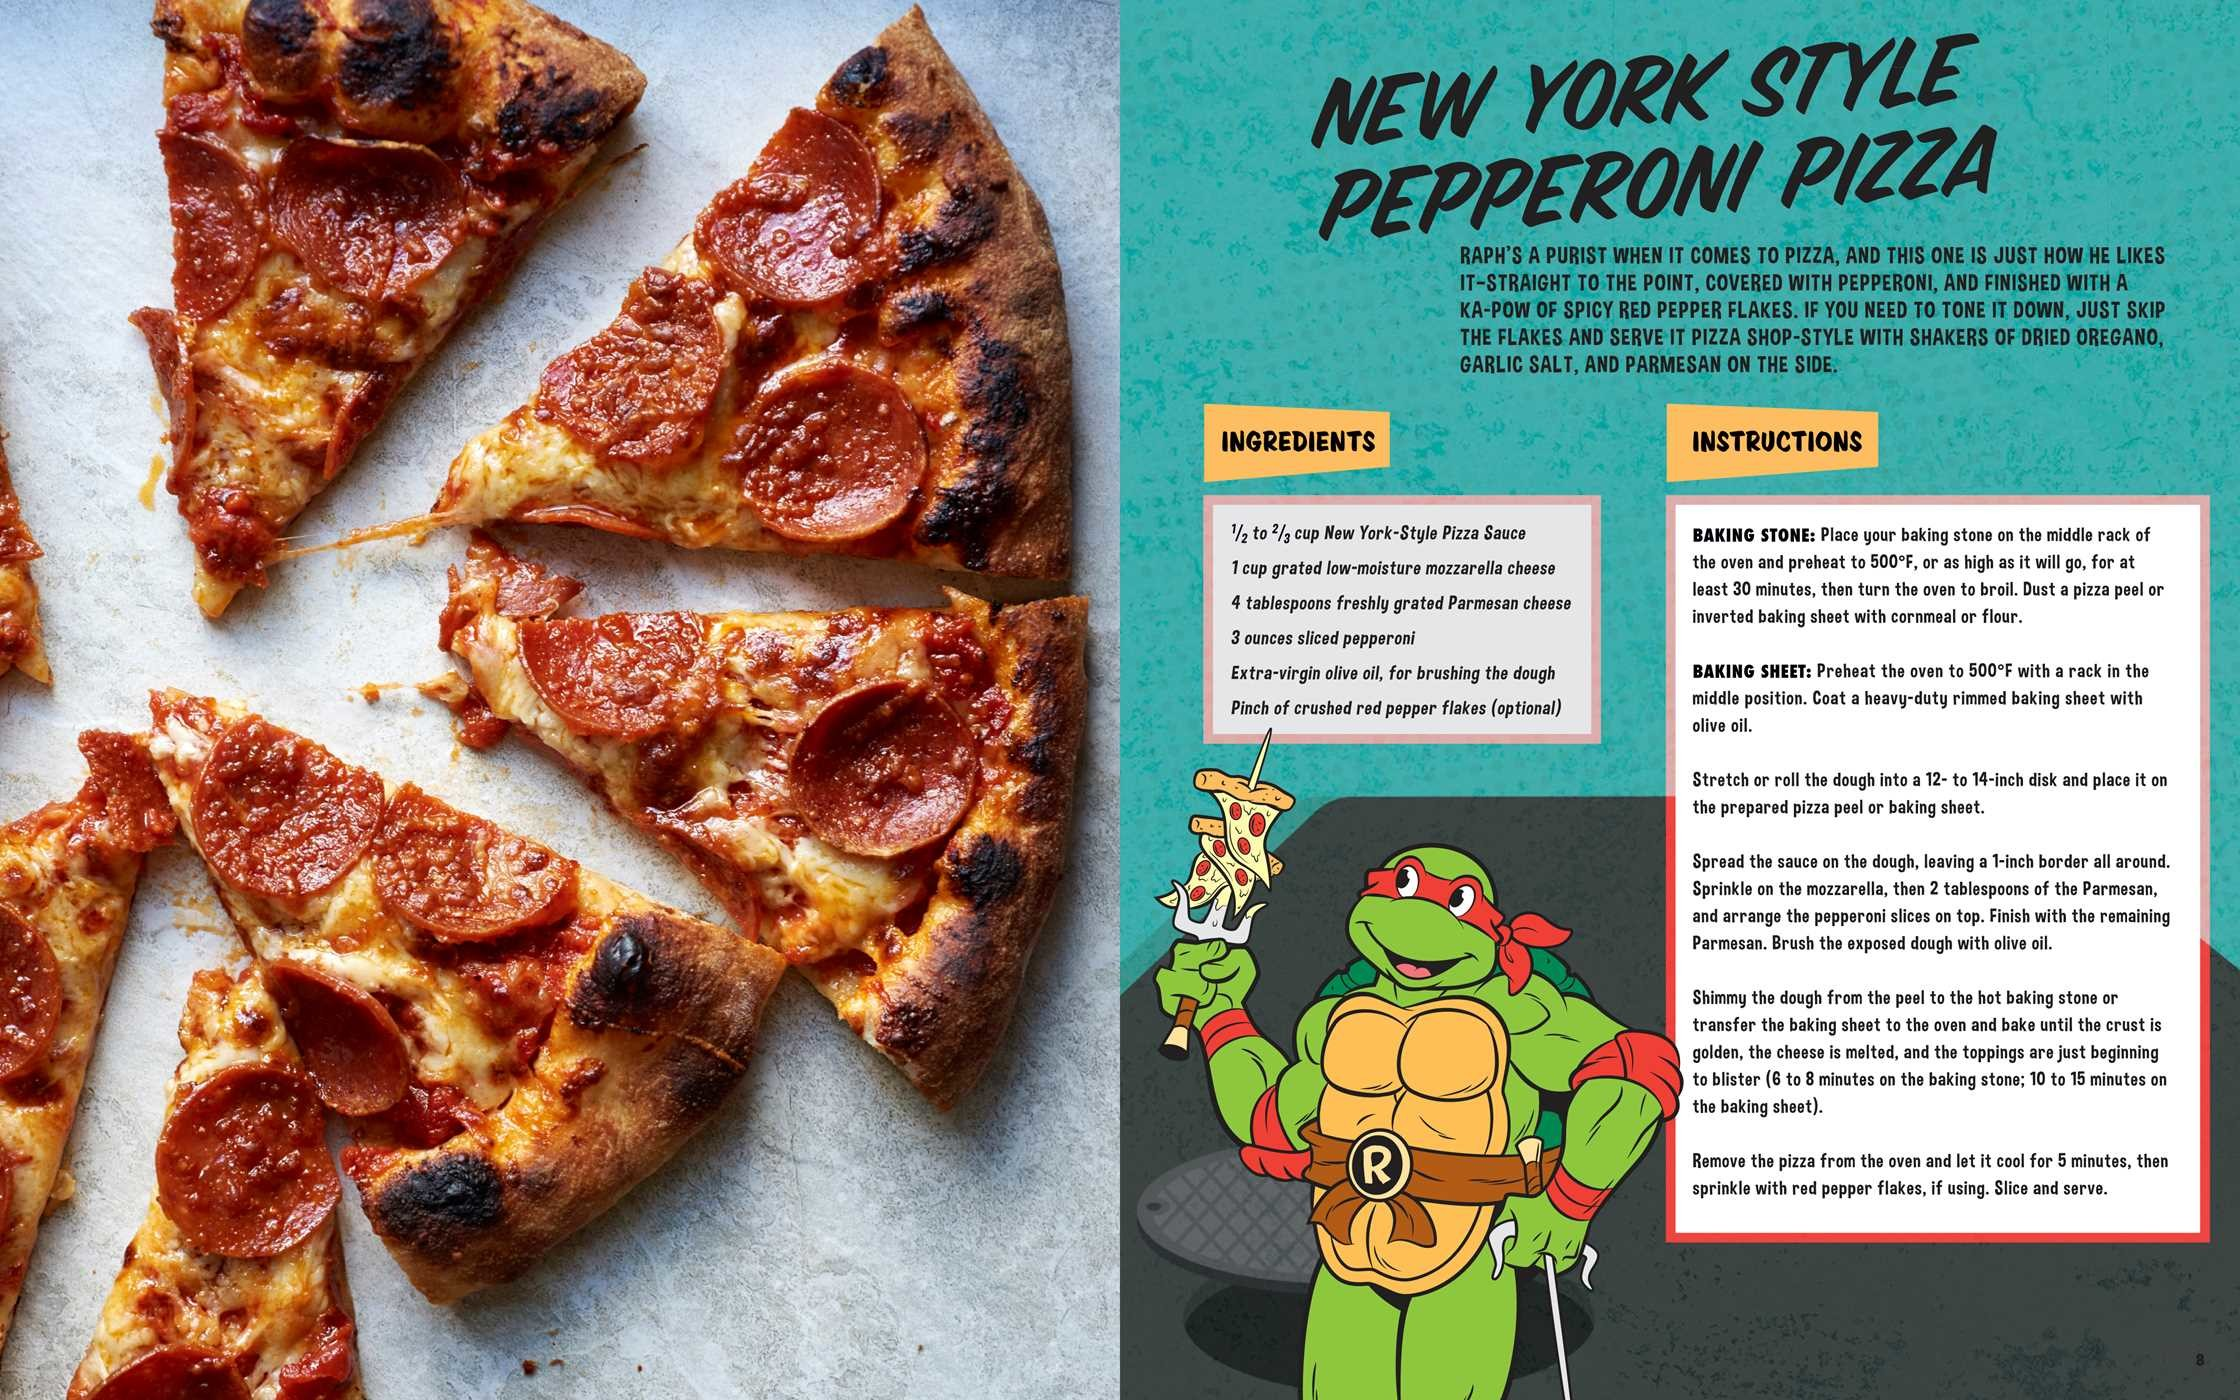 Teenage mutant ninja turtles the official pizza cookbook 9781608878314.in02